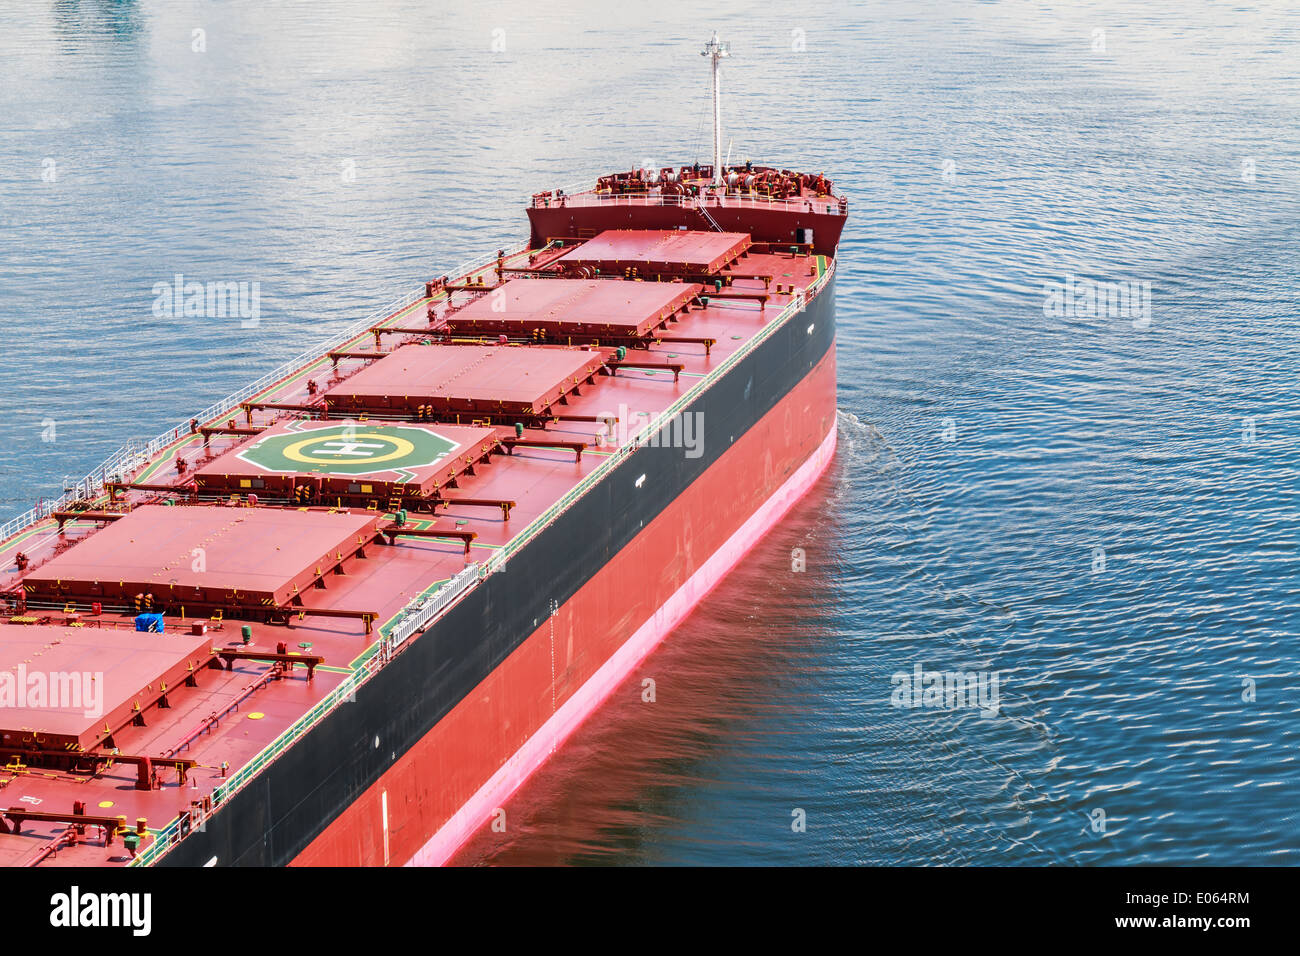 Large bulk carrier with Helicopter Pad on the deck. - Stock Image